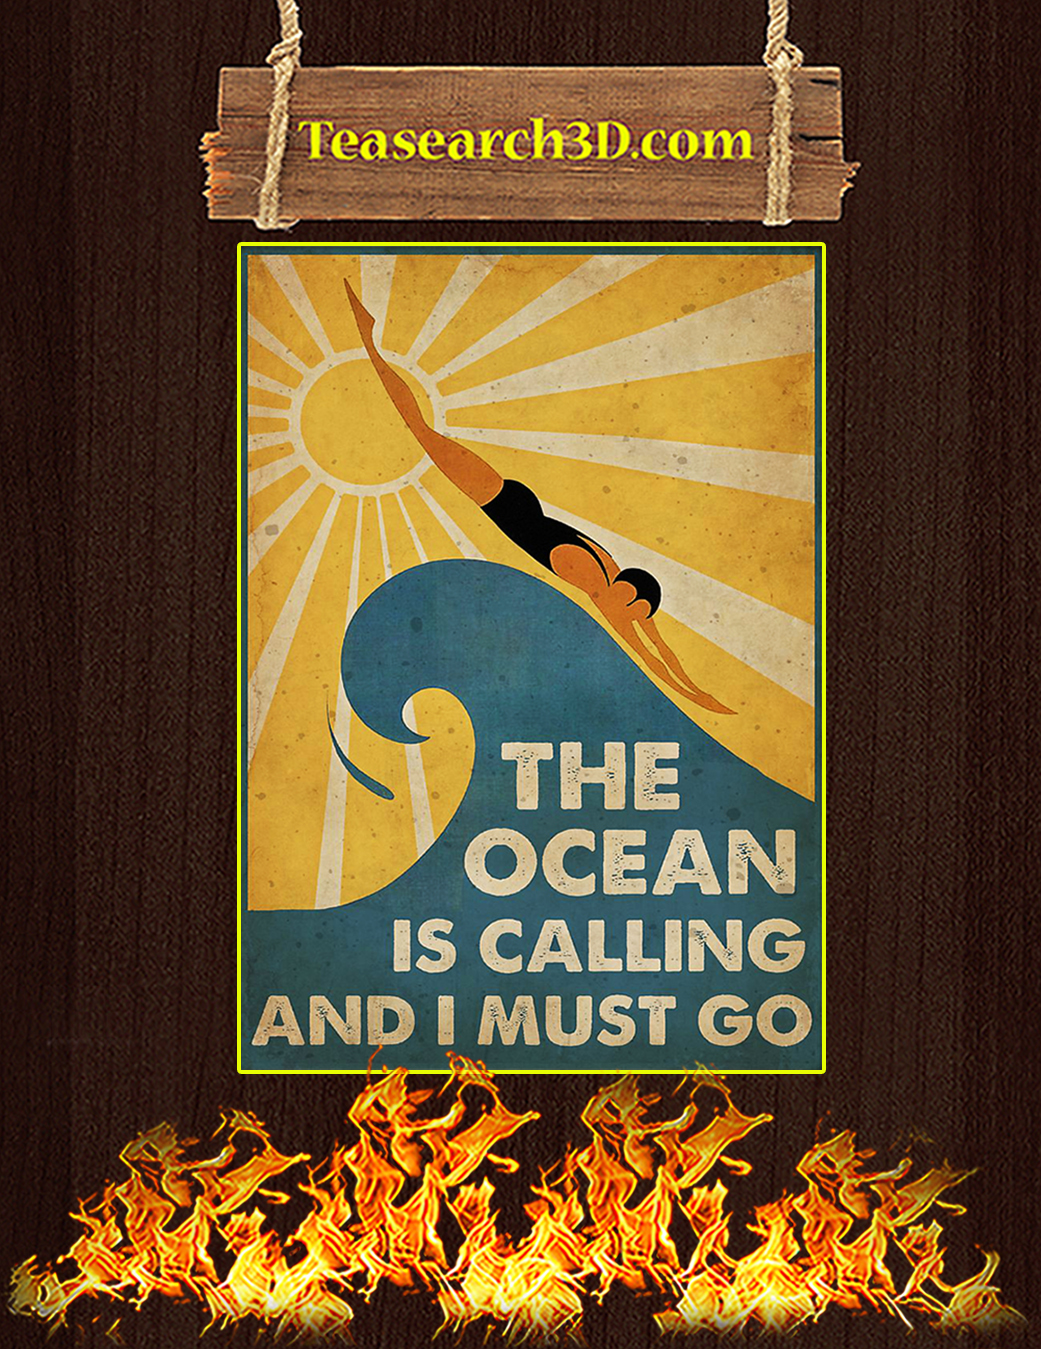 Swimming The ocean is calling and I must go poster A1